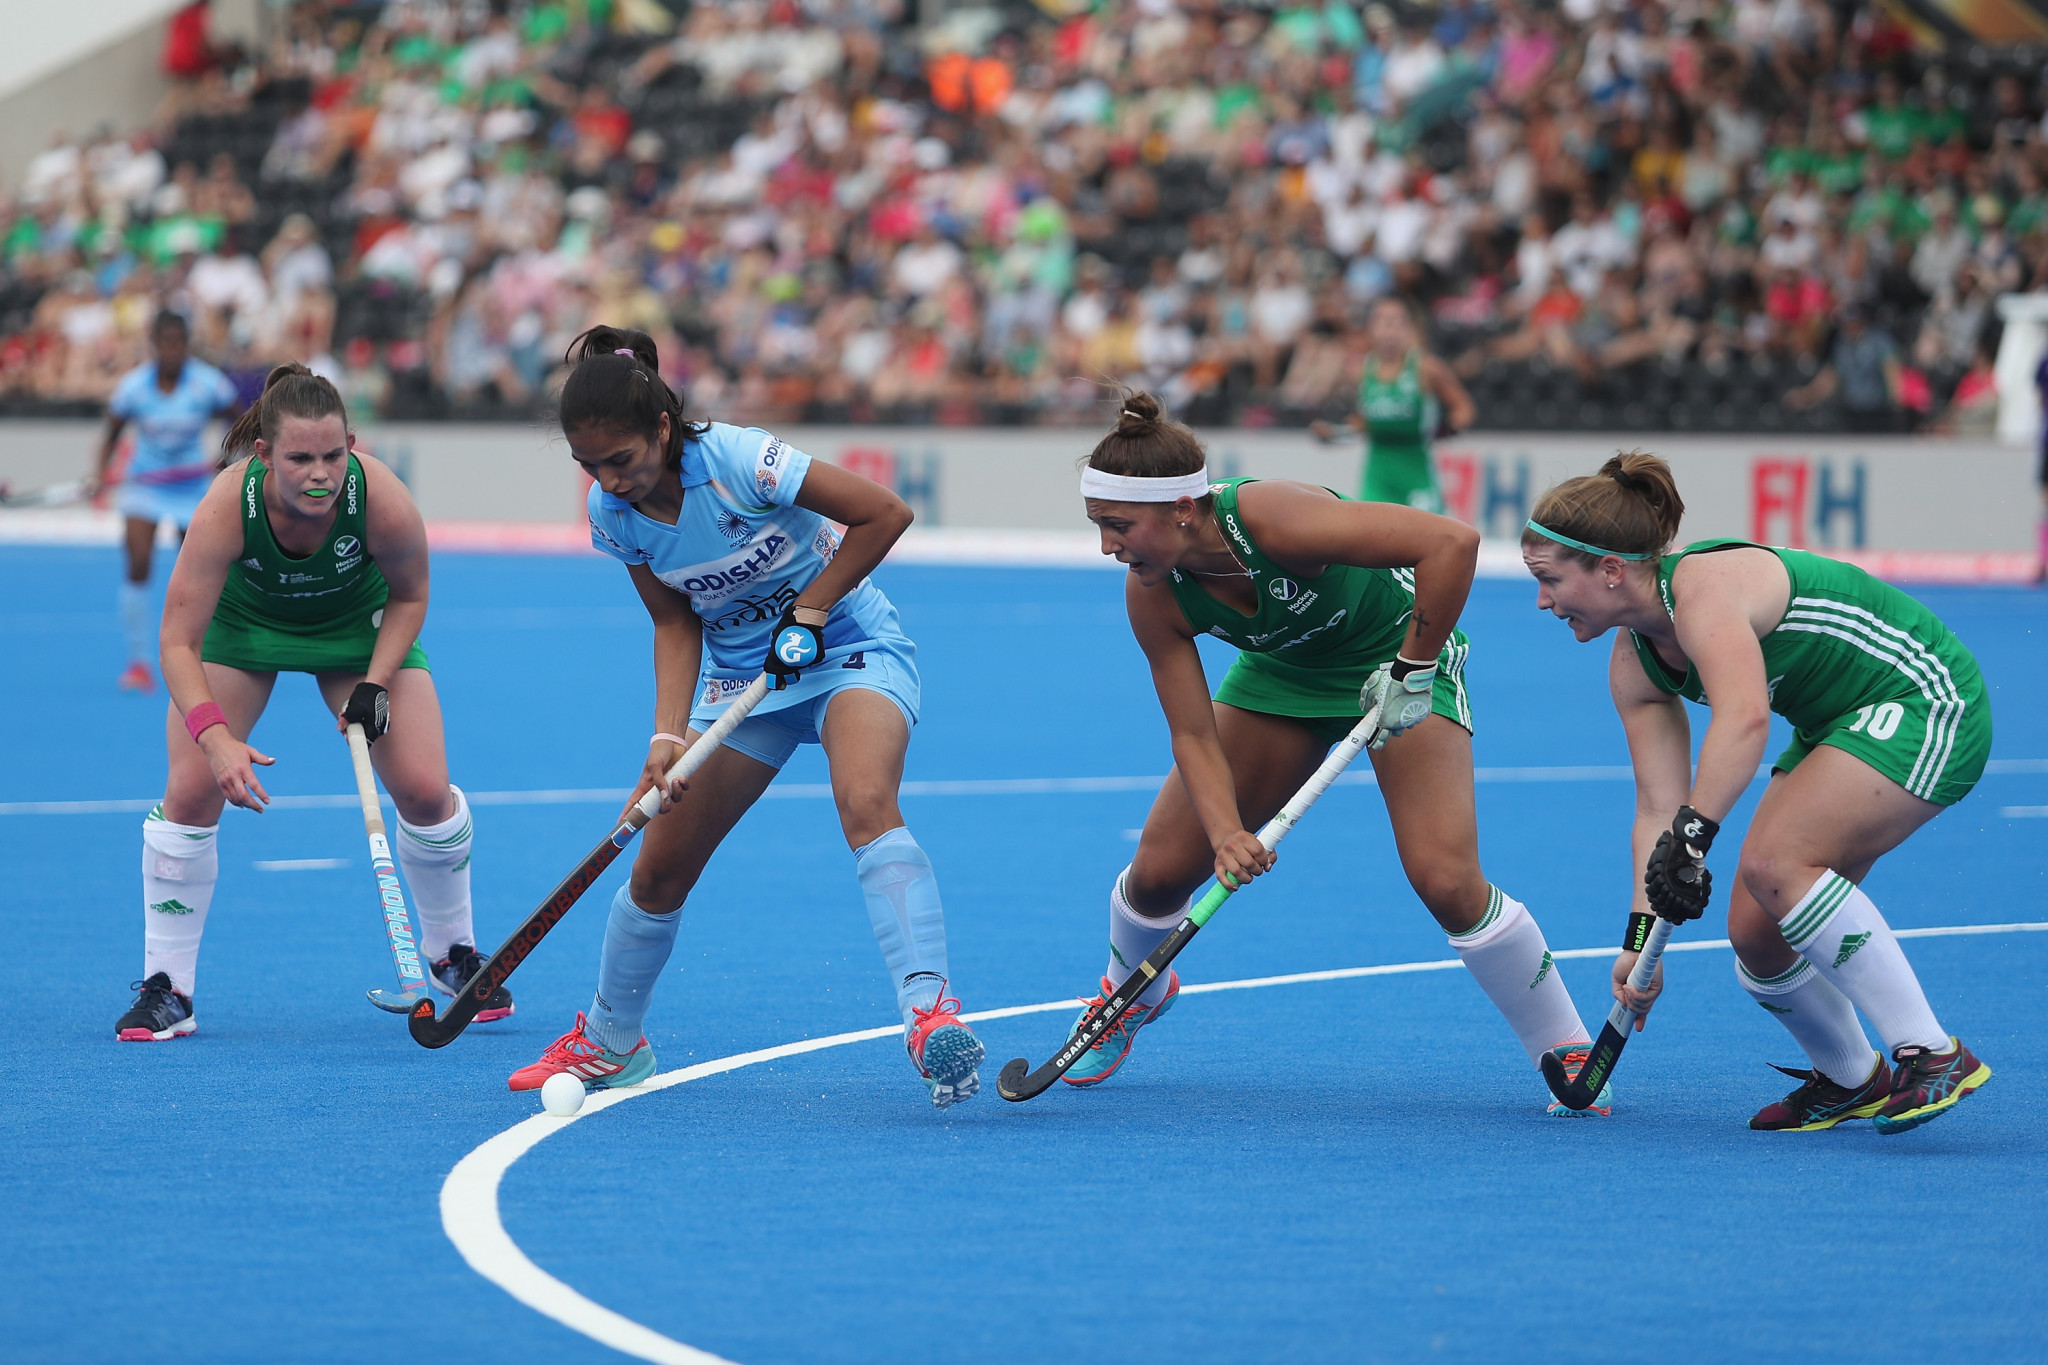 The ongoing Hockey World Cup is among the events backed by UK Sport ©Getty Images